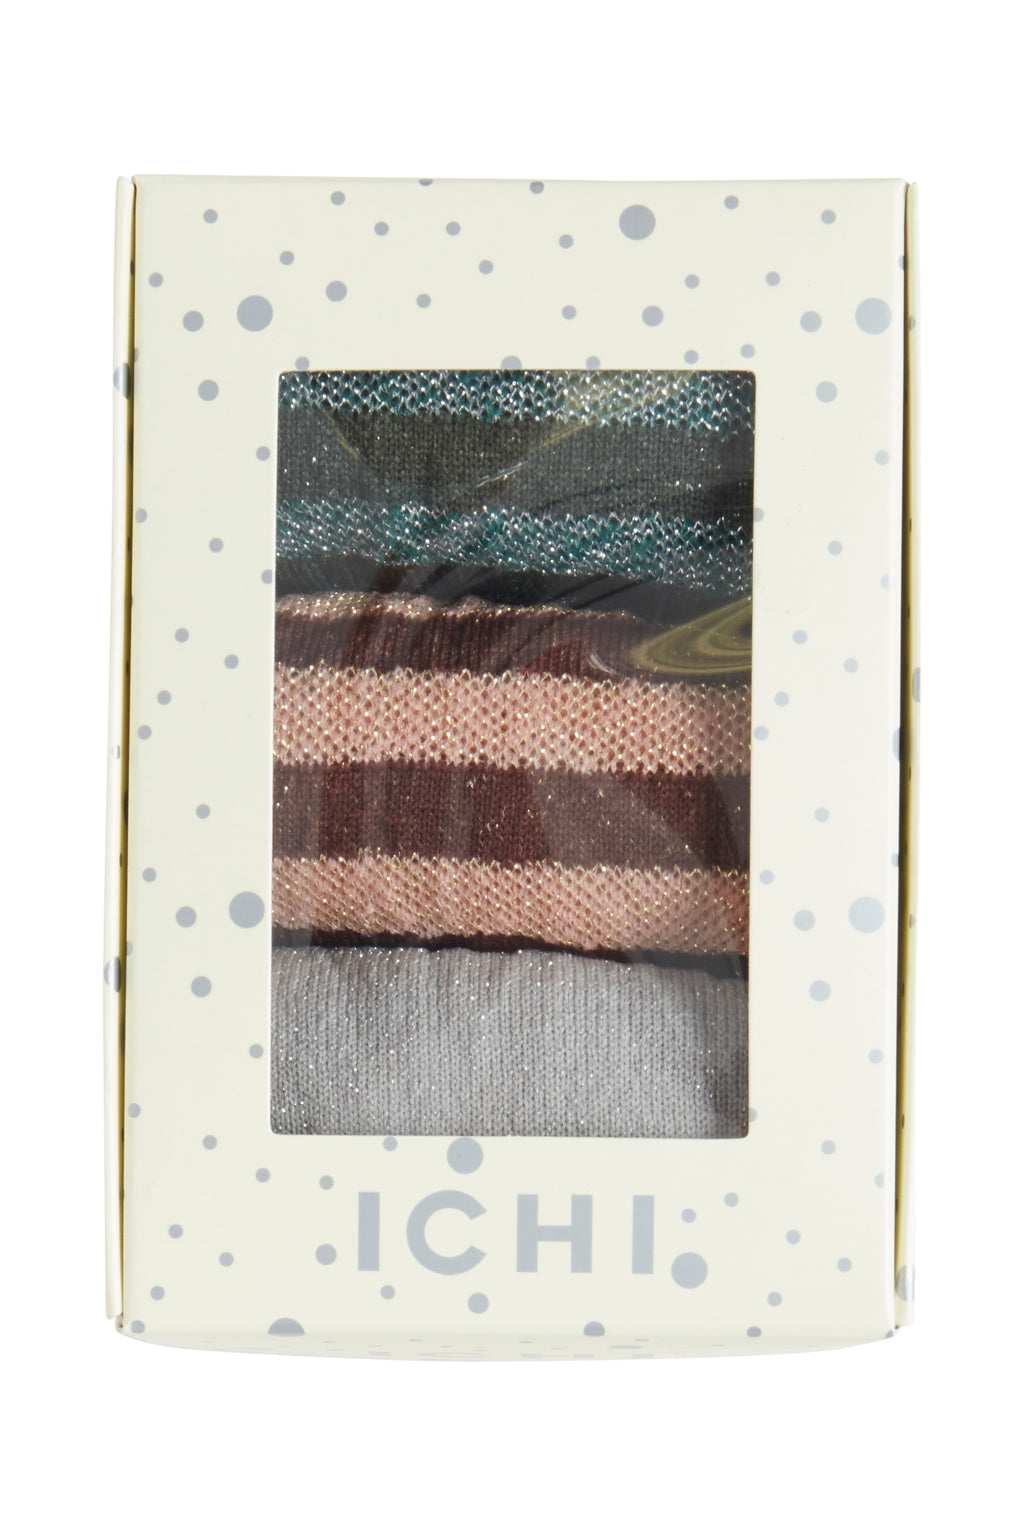 ICHI - SOCK BOX HARRIET - Styling by Claudia